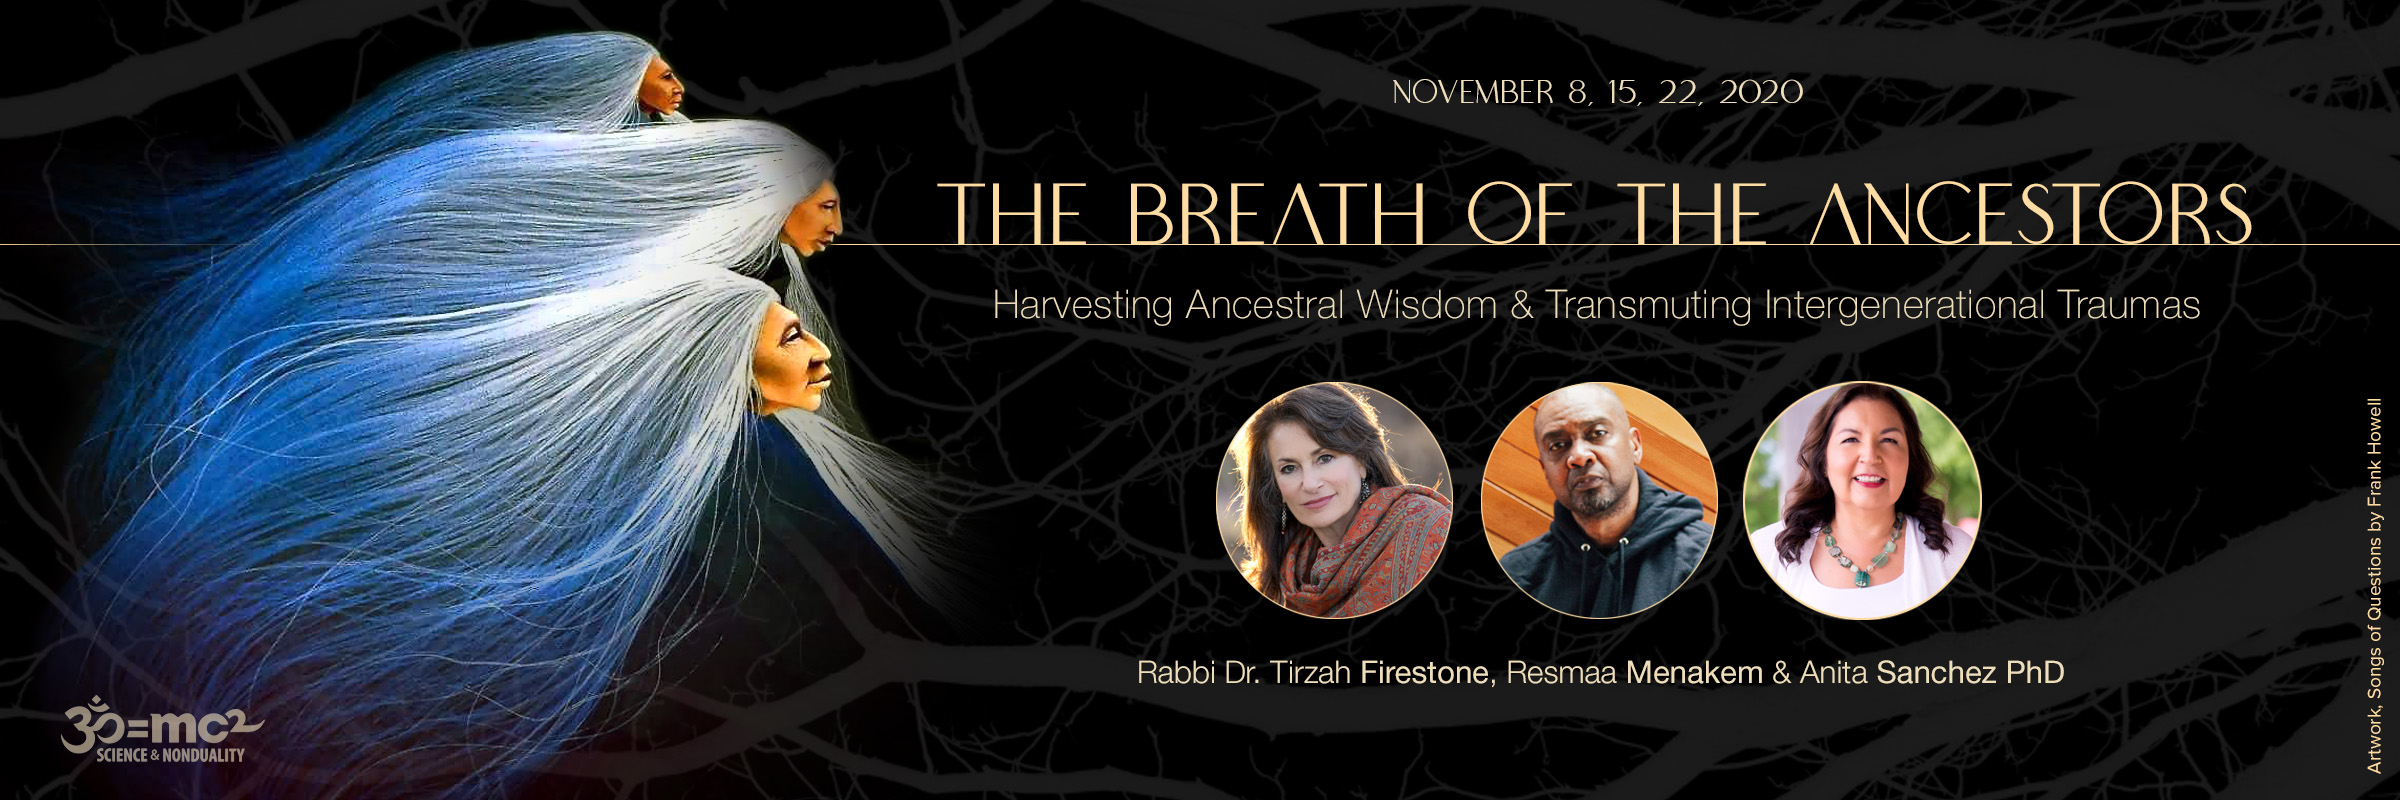 The Breath of the Ancestors